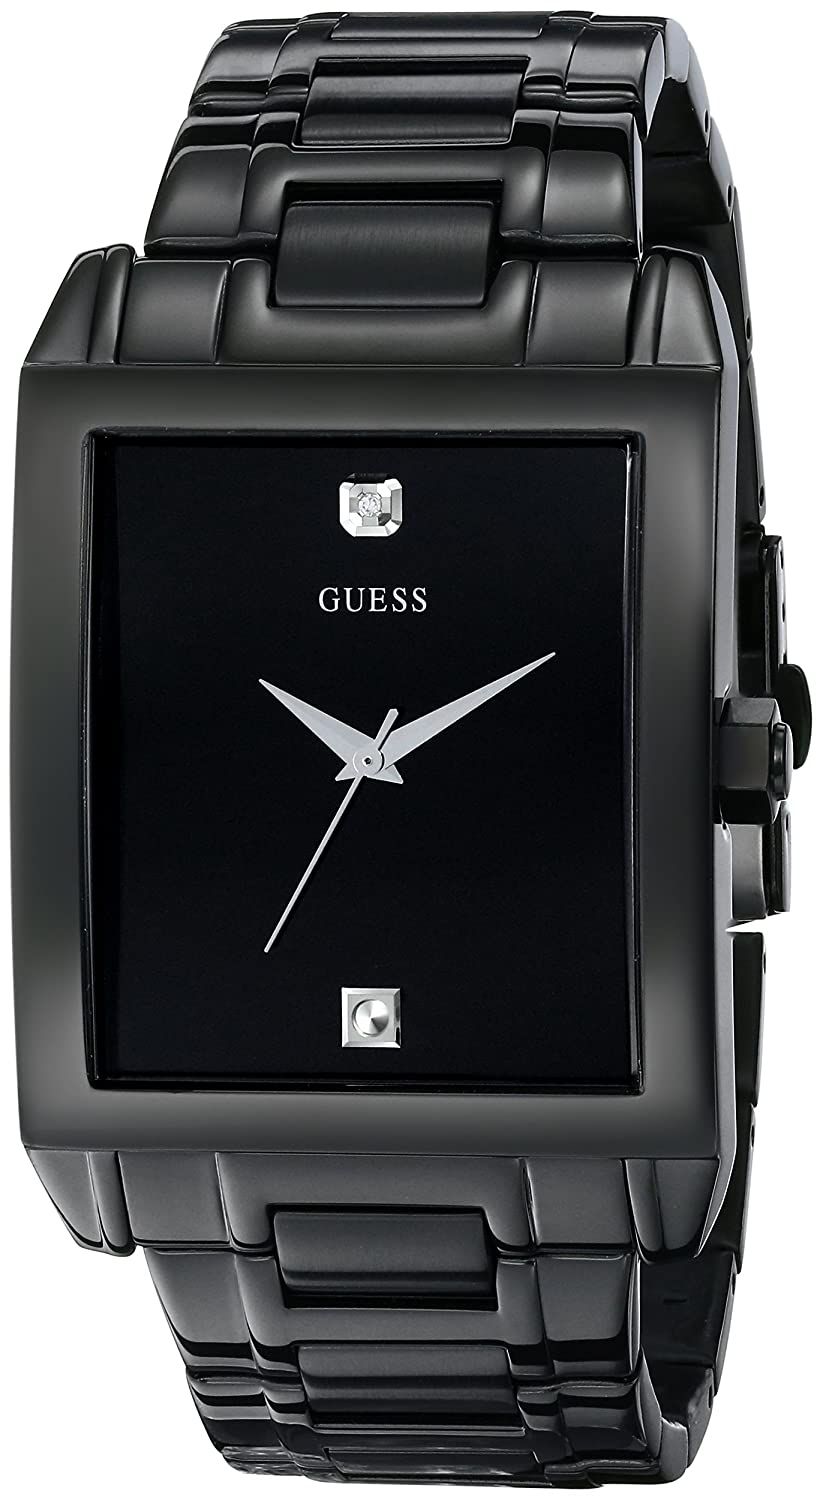 designers watch rectangular singapore watches pink leather men black orchard dial online hugo with index boss